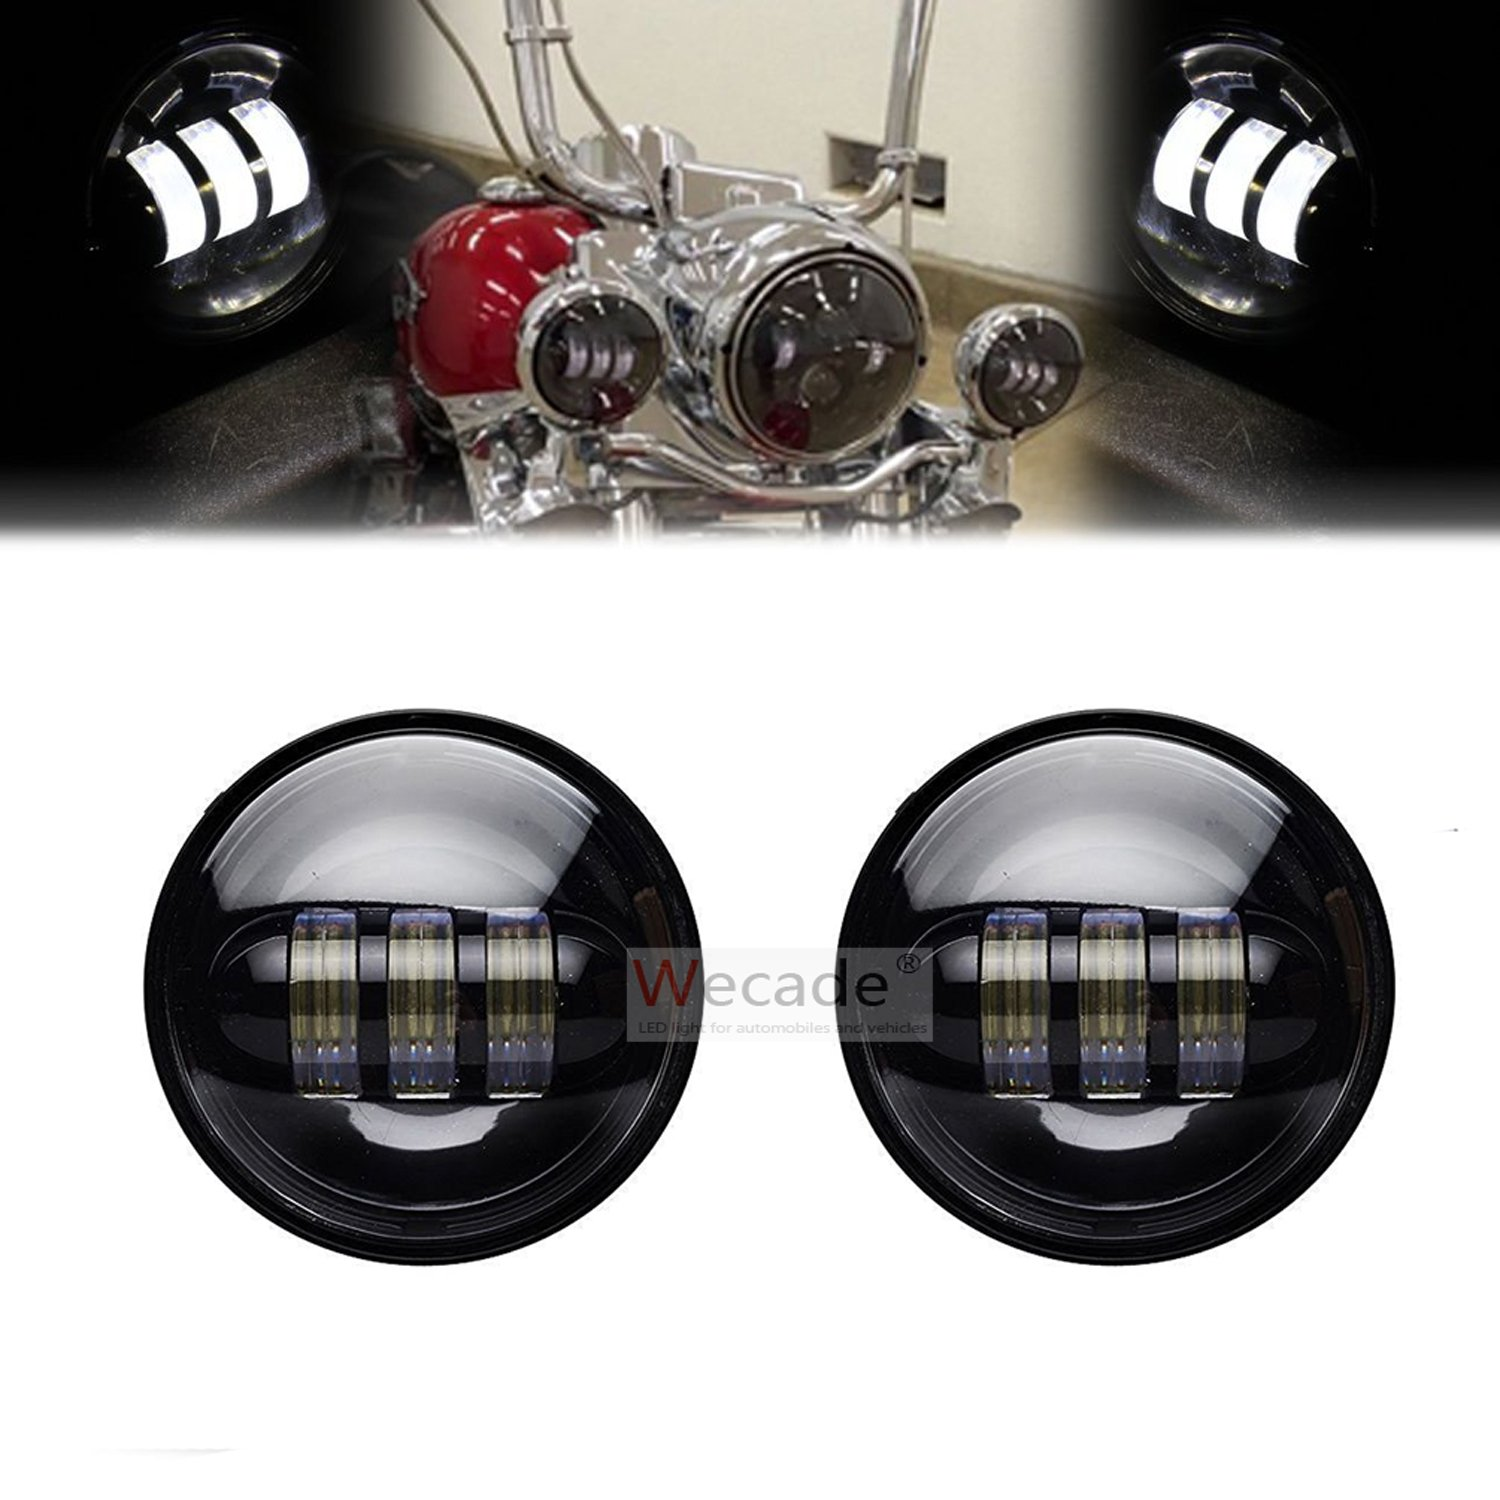 Wecade 4-1/2'' 4.5inch LED Passing Light for Harley Davidson Fog Lamps Auxiliary Light Bulb Motorcycle Daymaker Projector Spot Driving Lamp Headlight (Black)